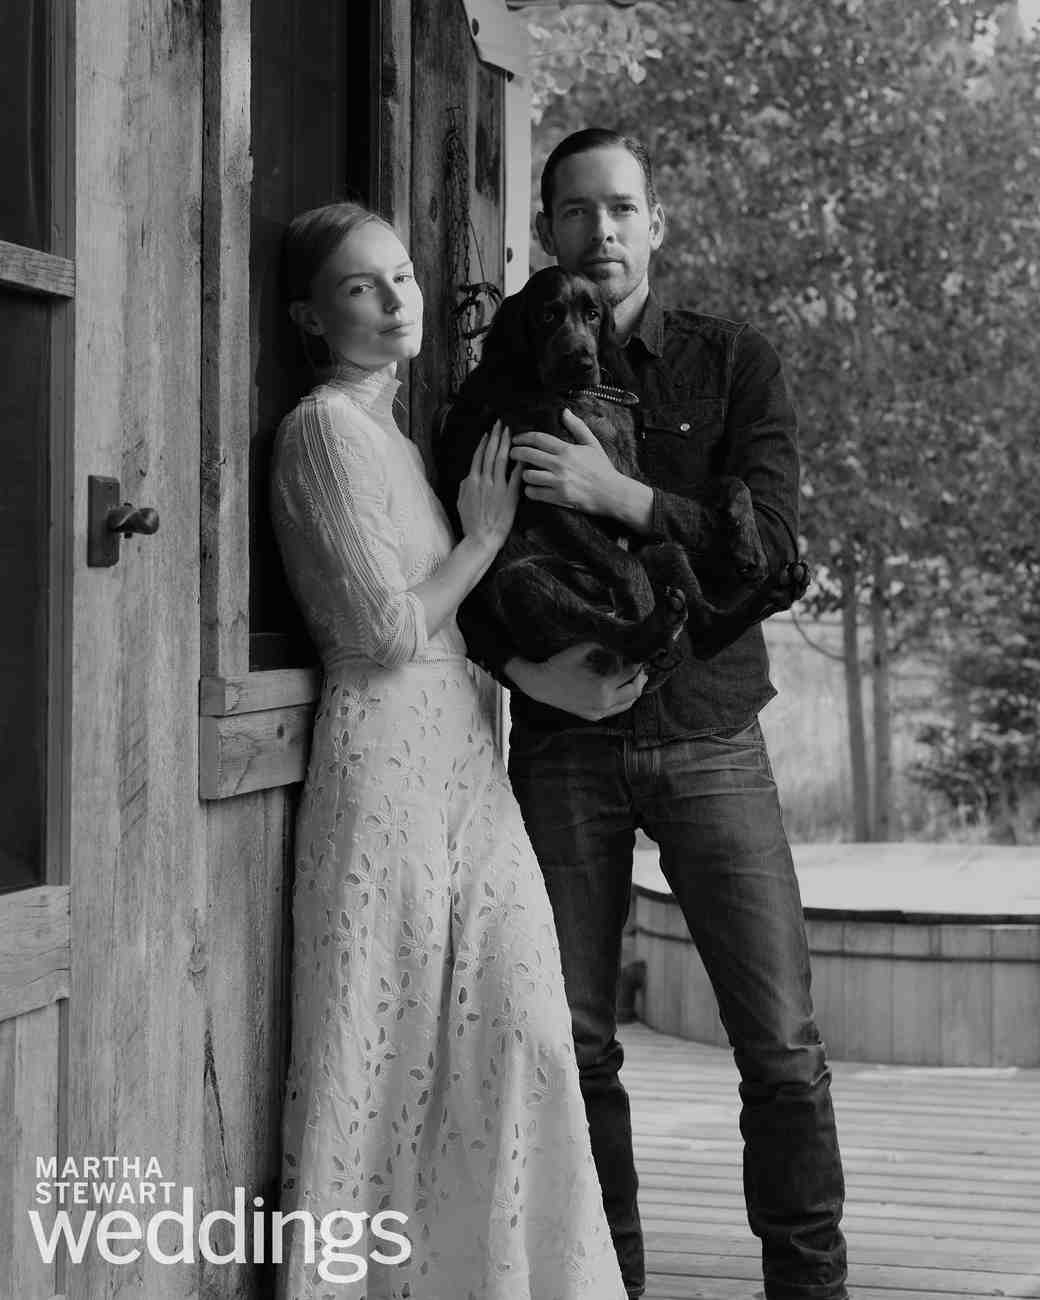 kate-bosworth-michael-polish-02.jpg